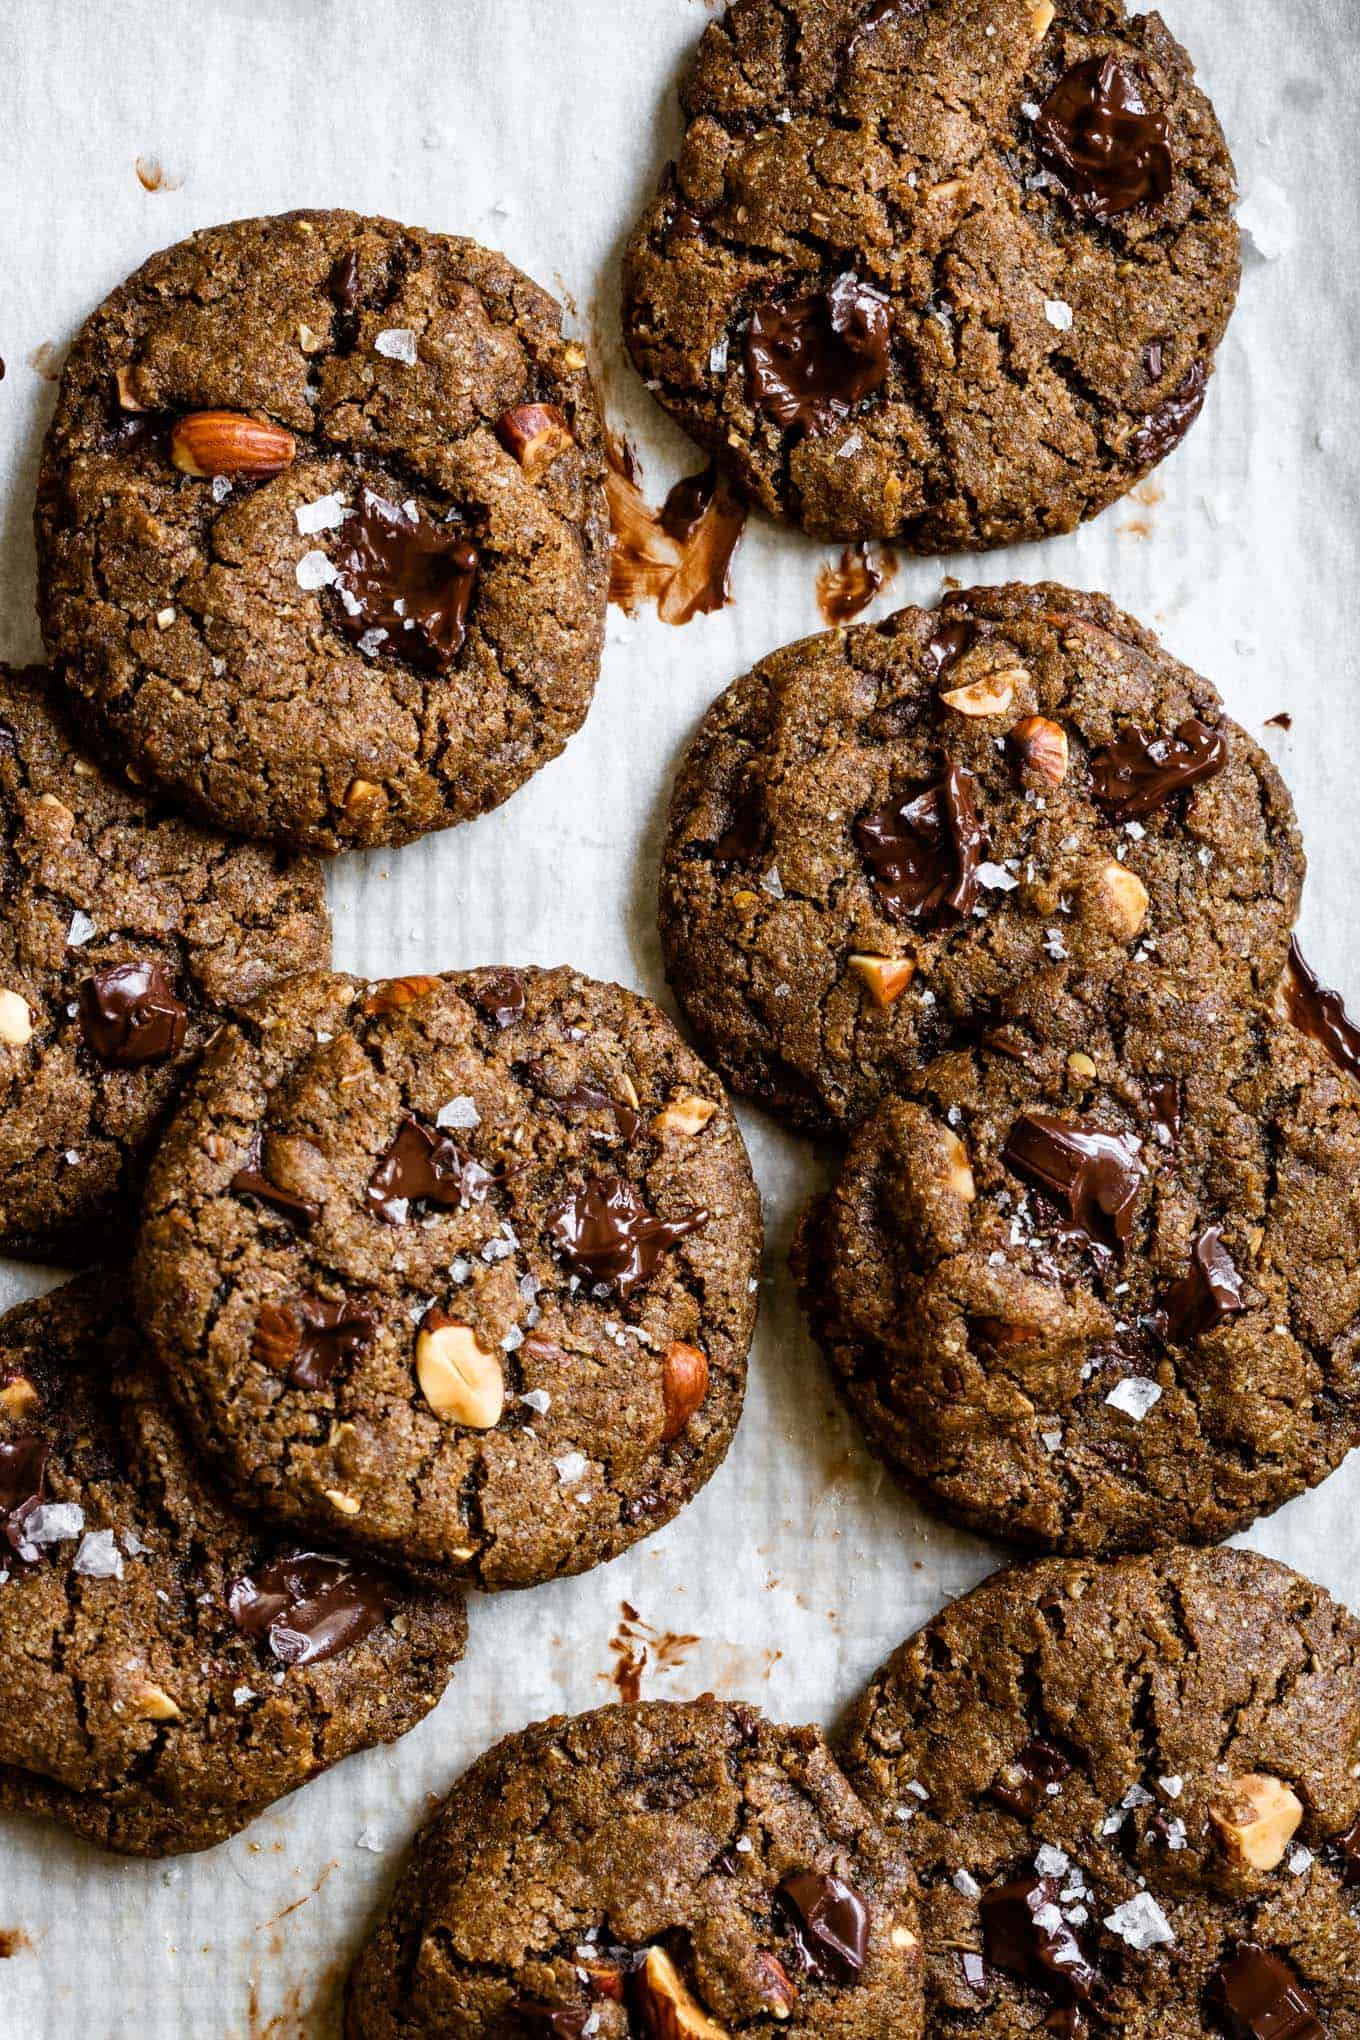 Best Vegan Gluten-Free Chocolate Chip Cookies